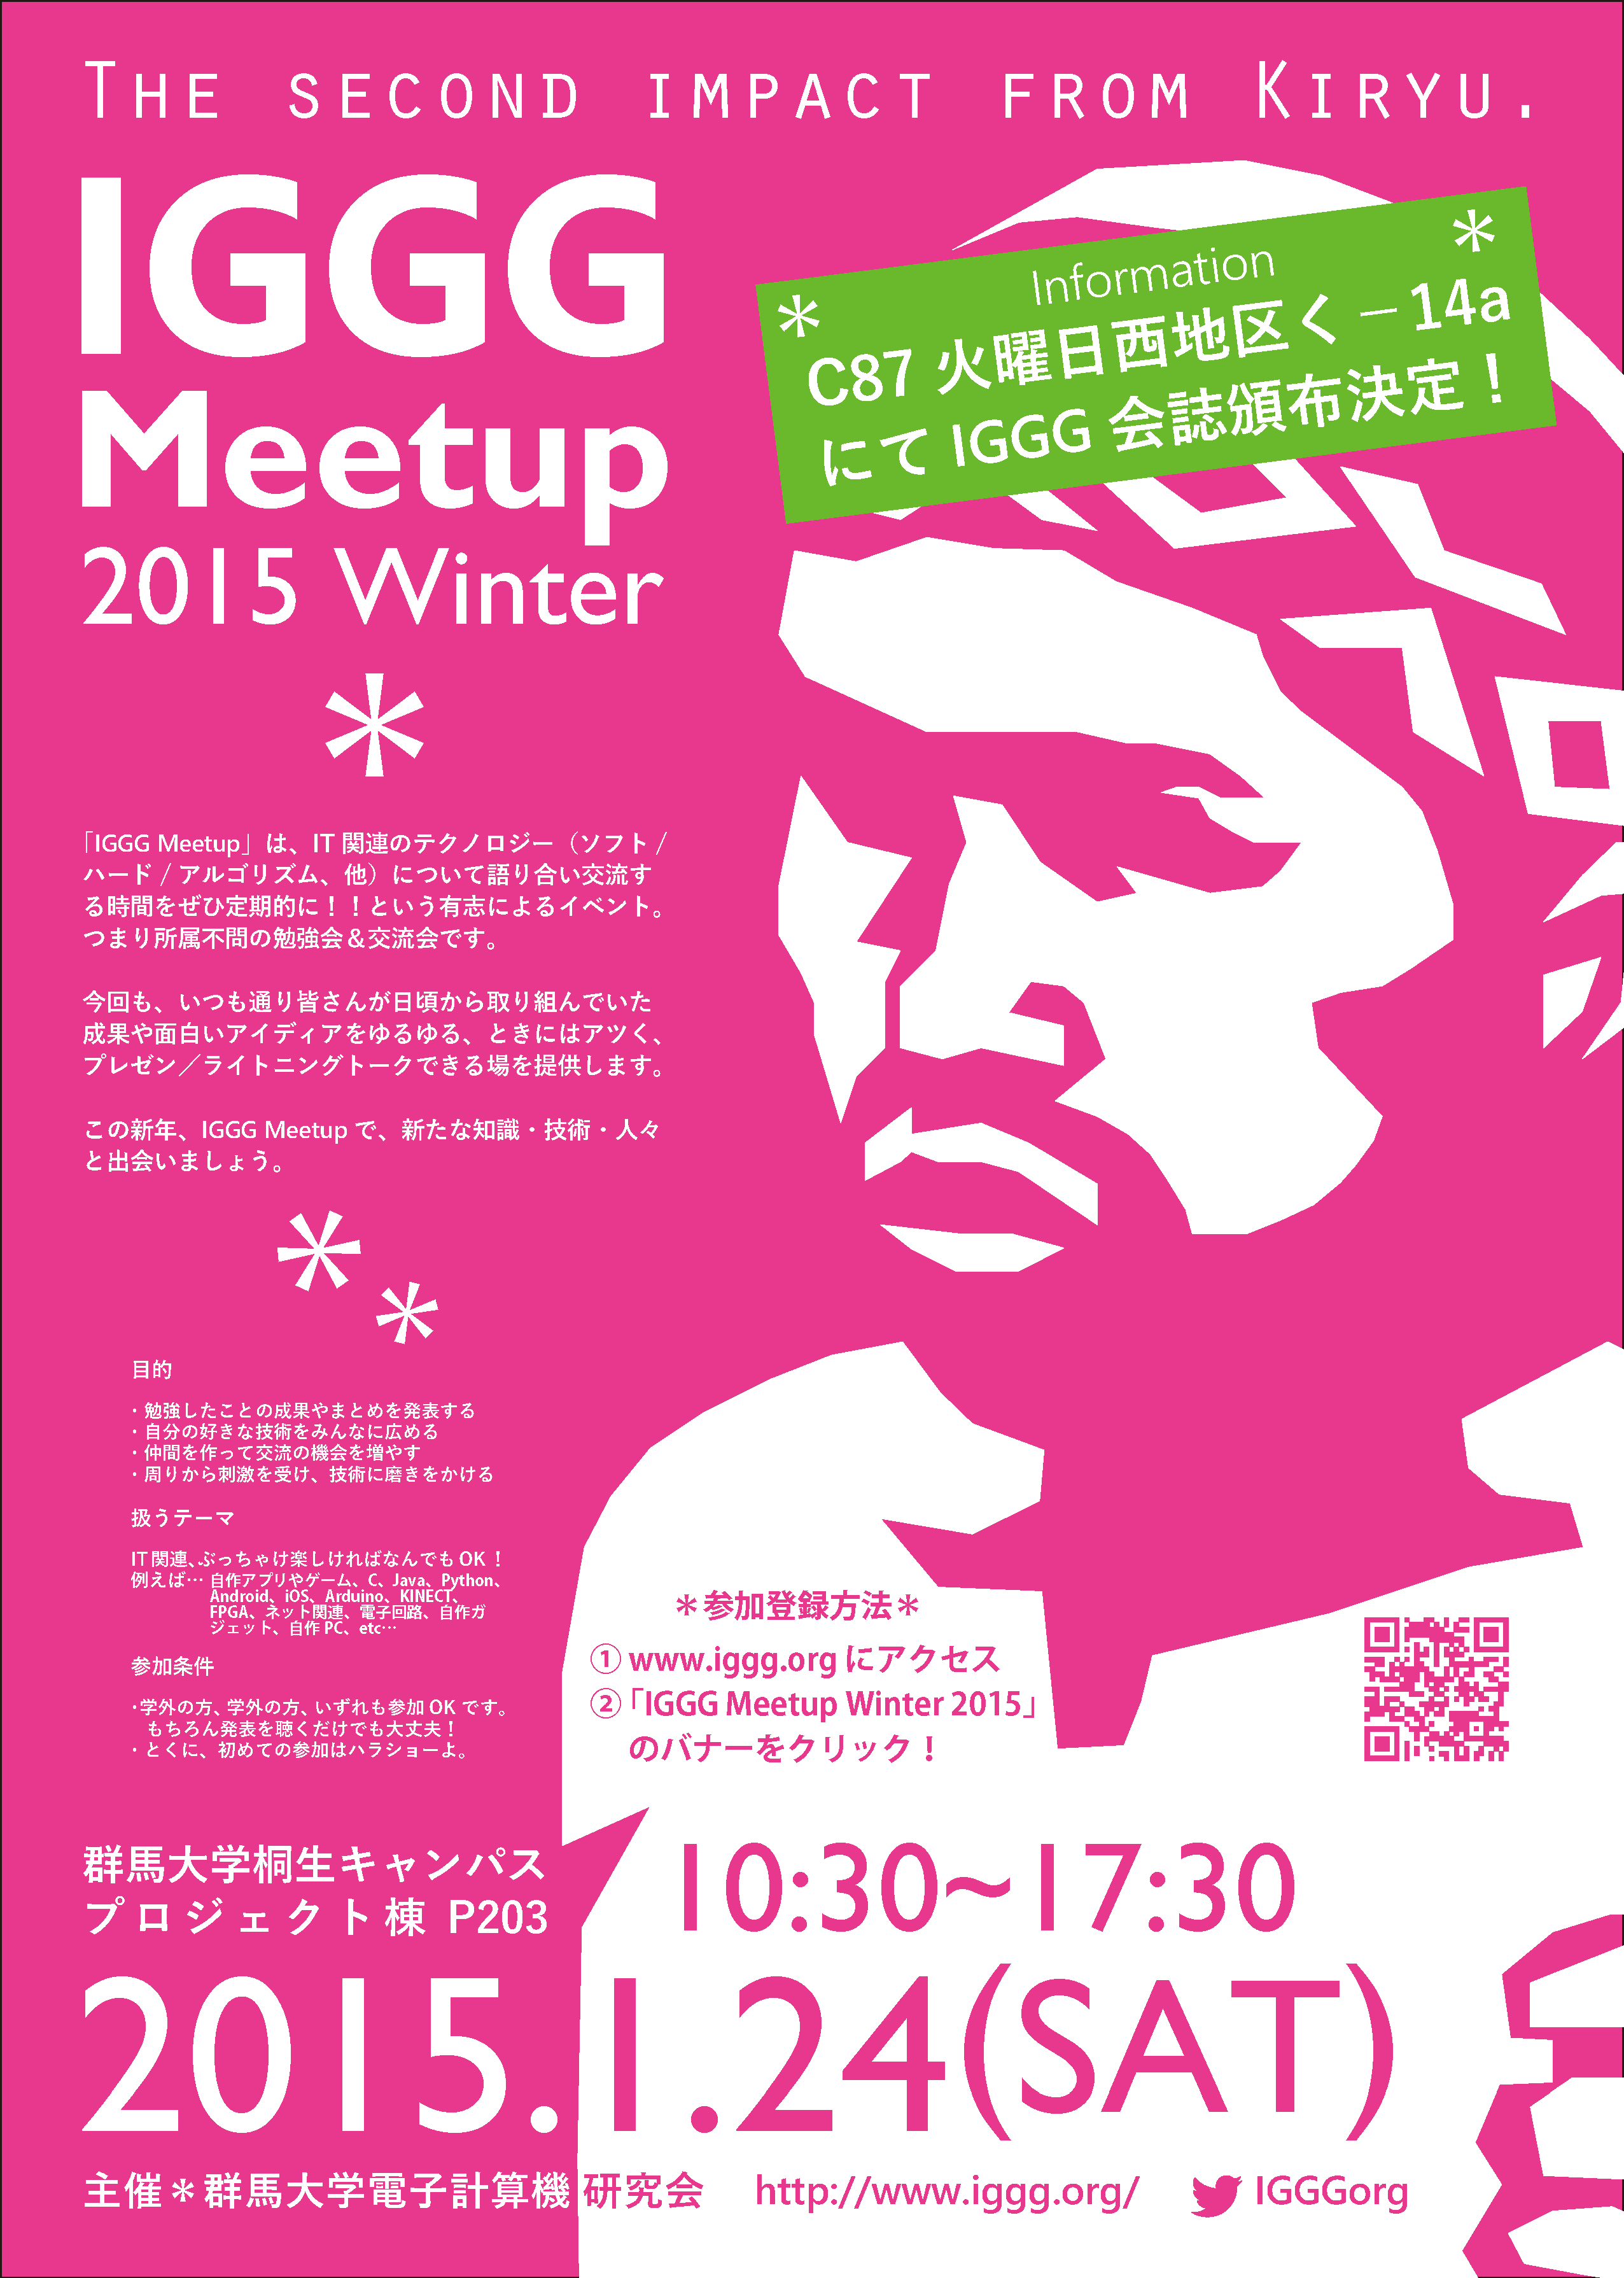 IGGG Meetup 2015 Winter ポスター